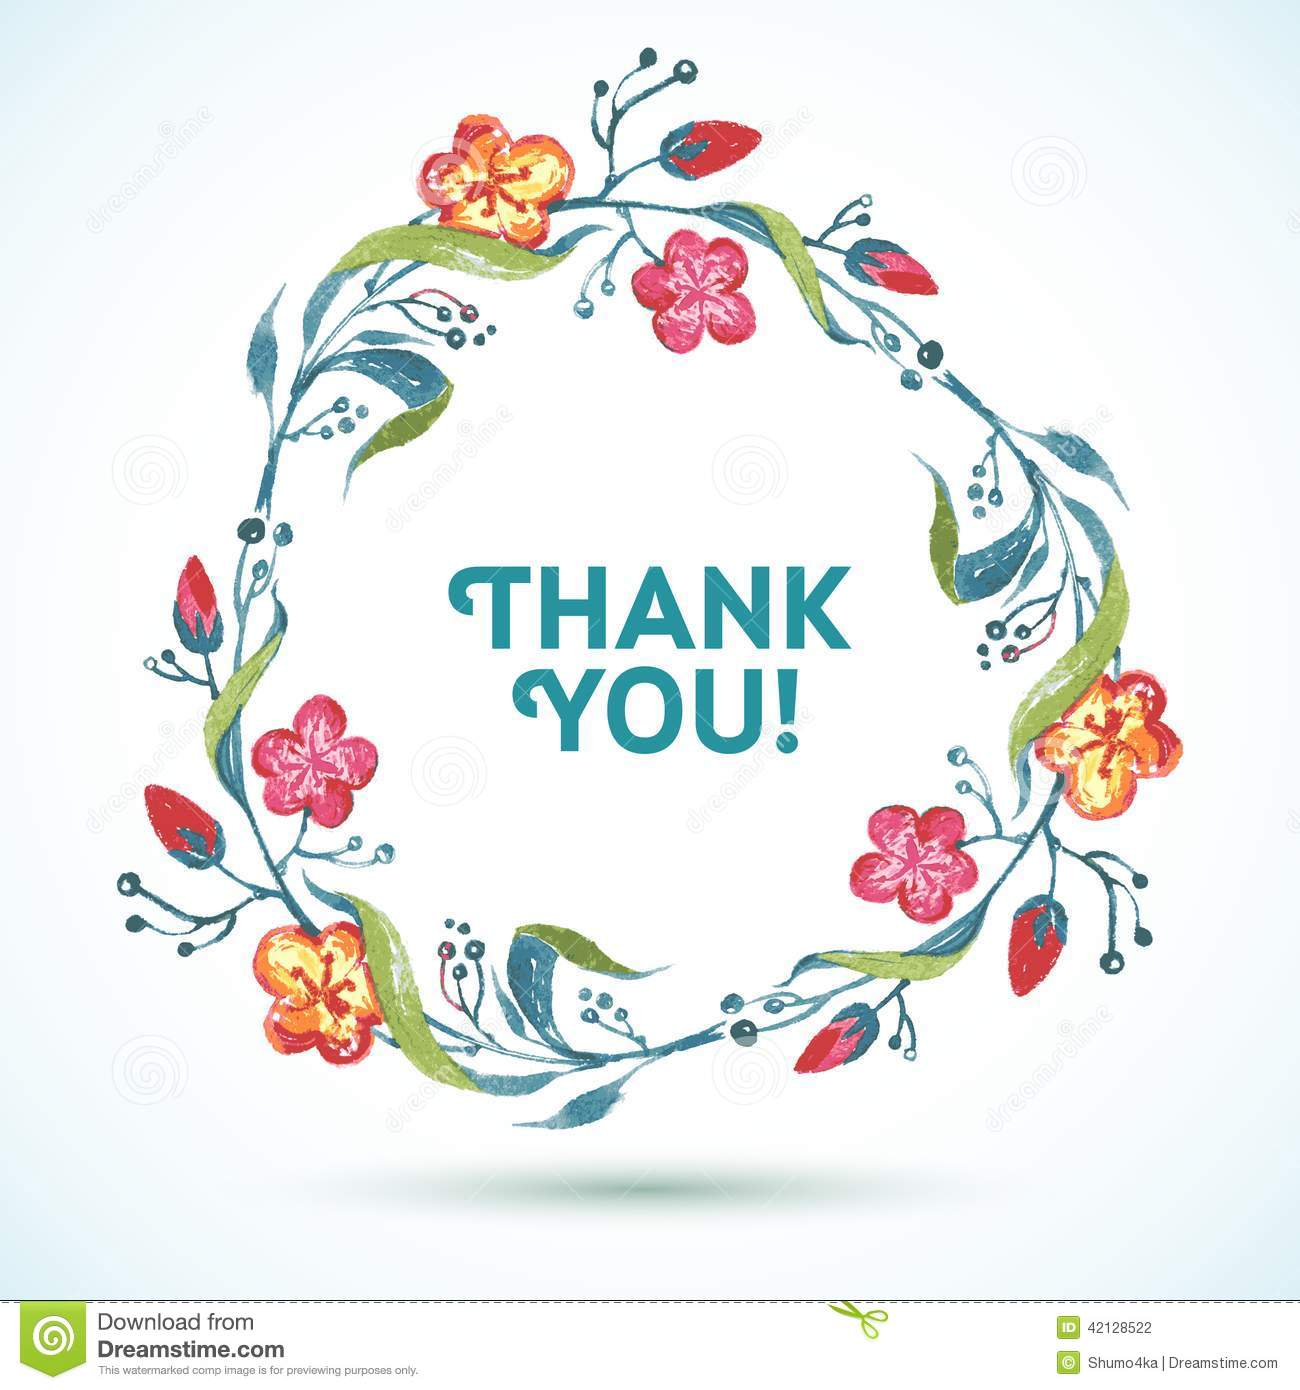 how to sign off thank you card